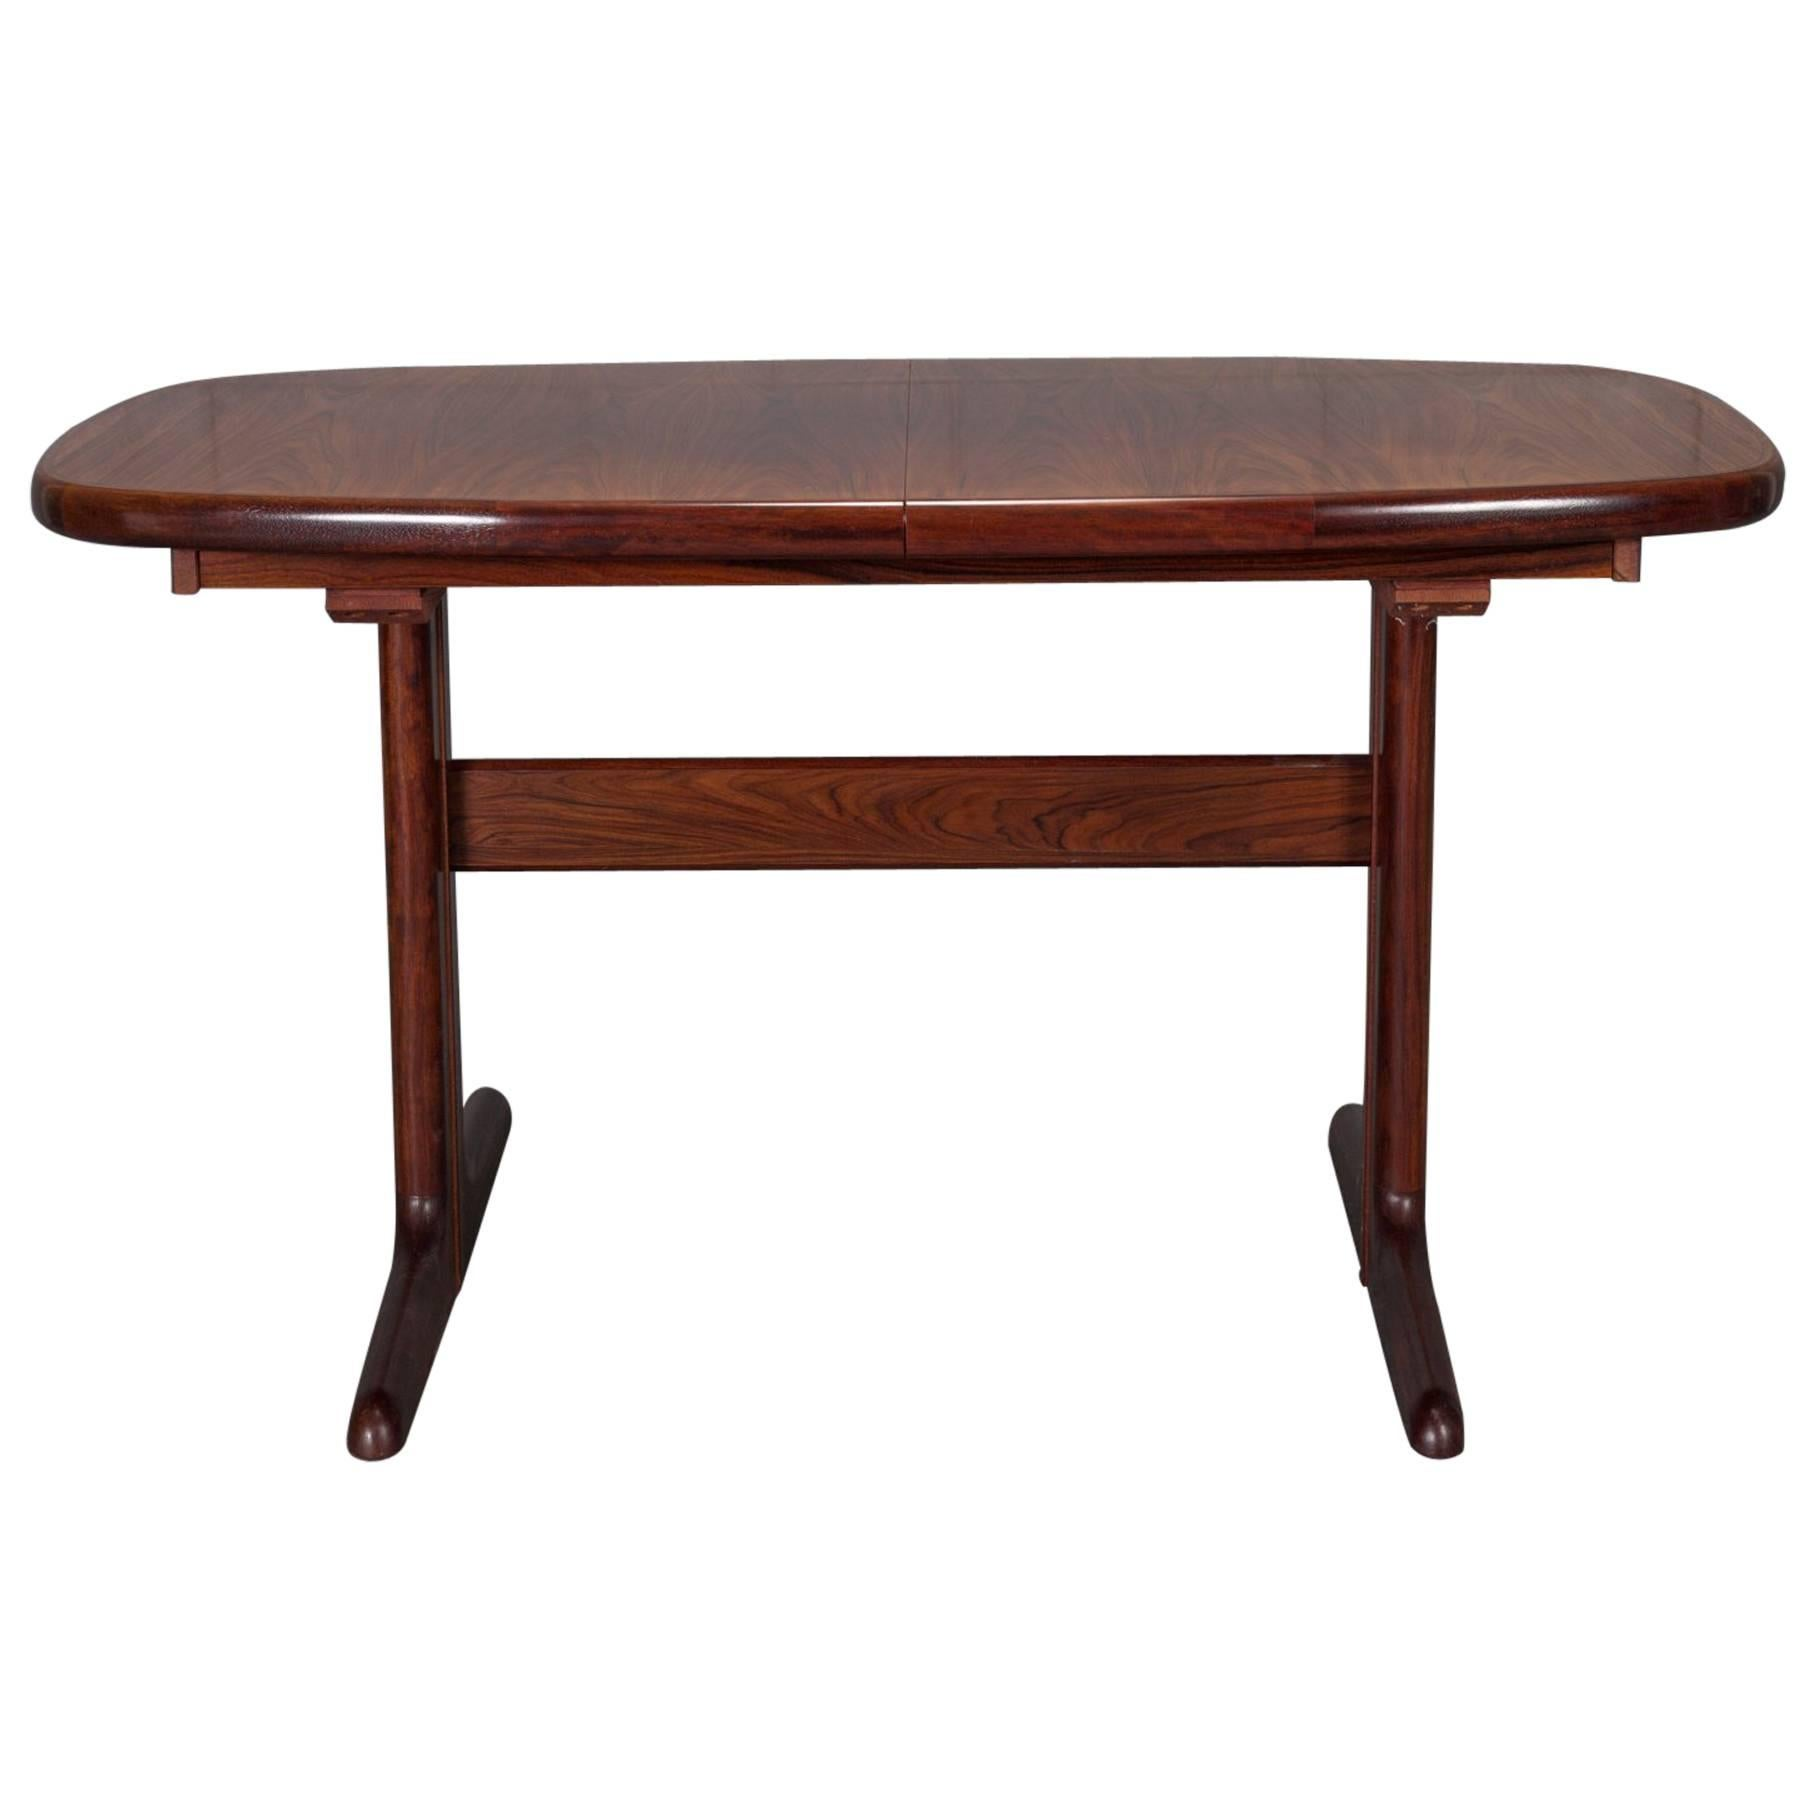 Modern Rosewood Dining Extension Table with Two Leaves by Dyrlund